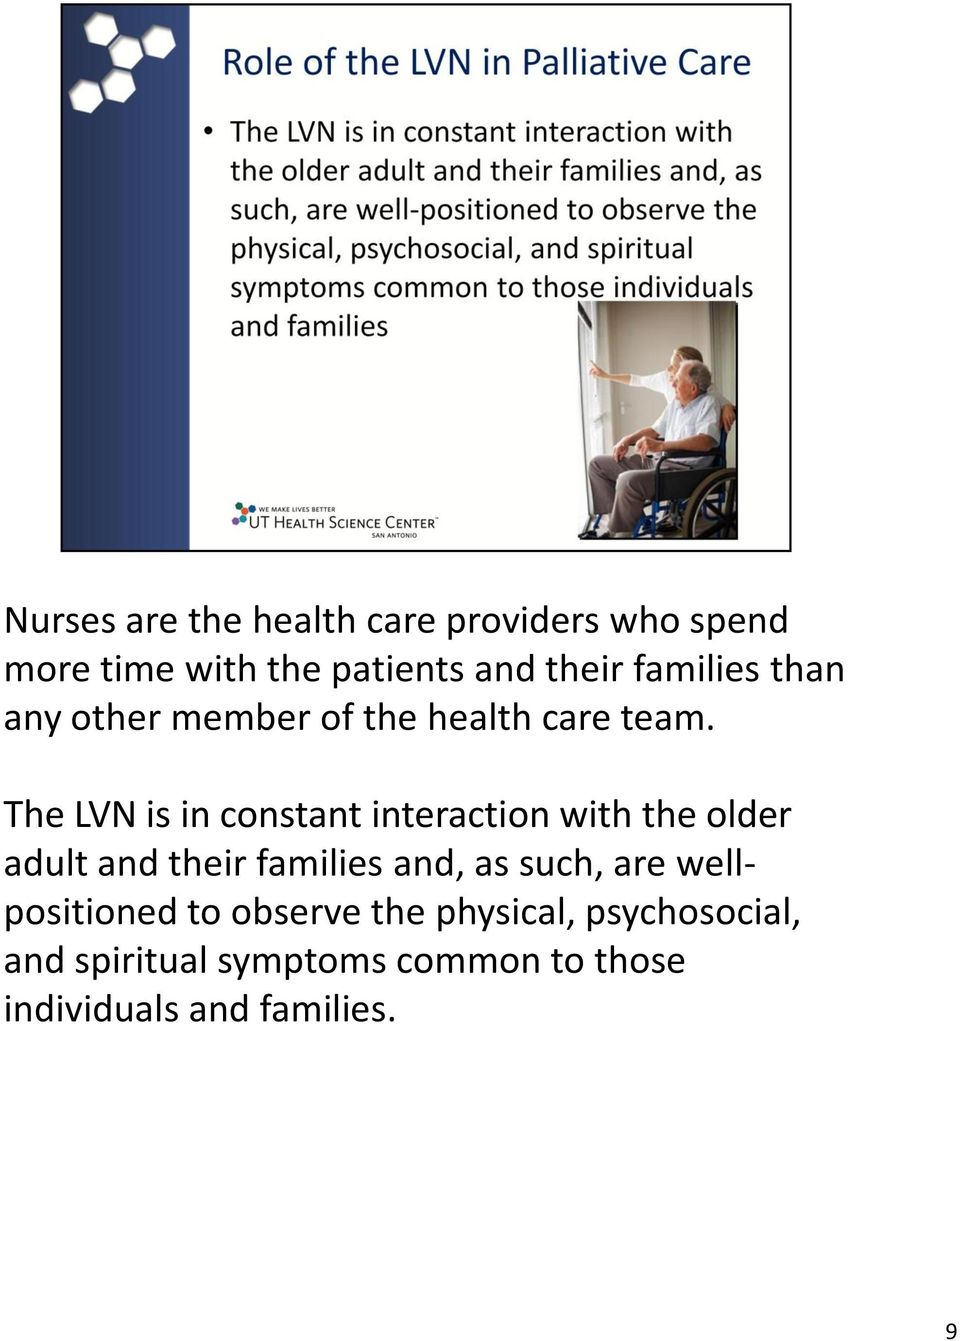 The LVN is in constant interaction with the older adult and their families and, as such,